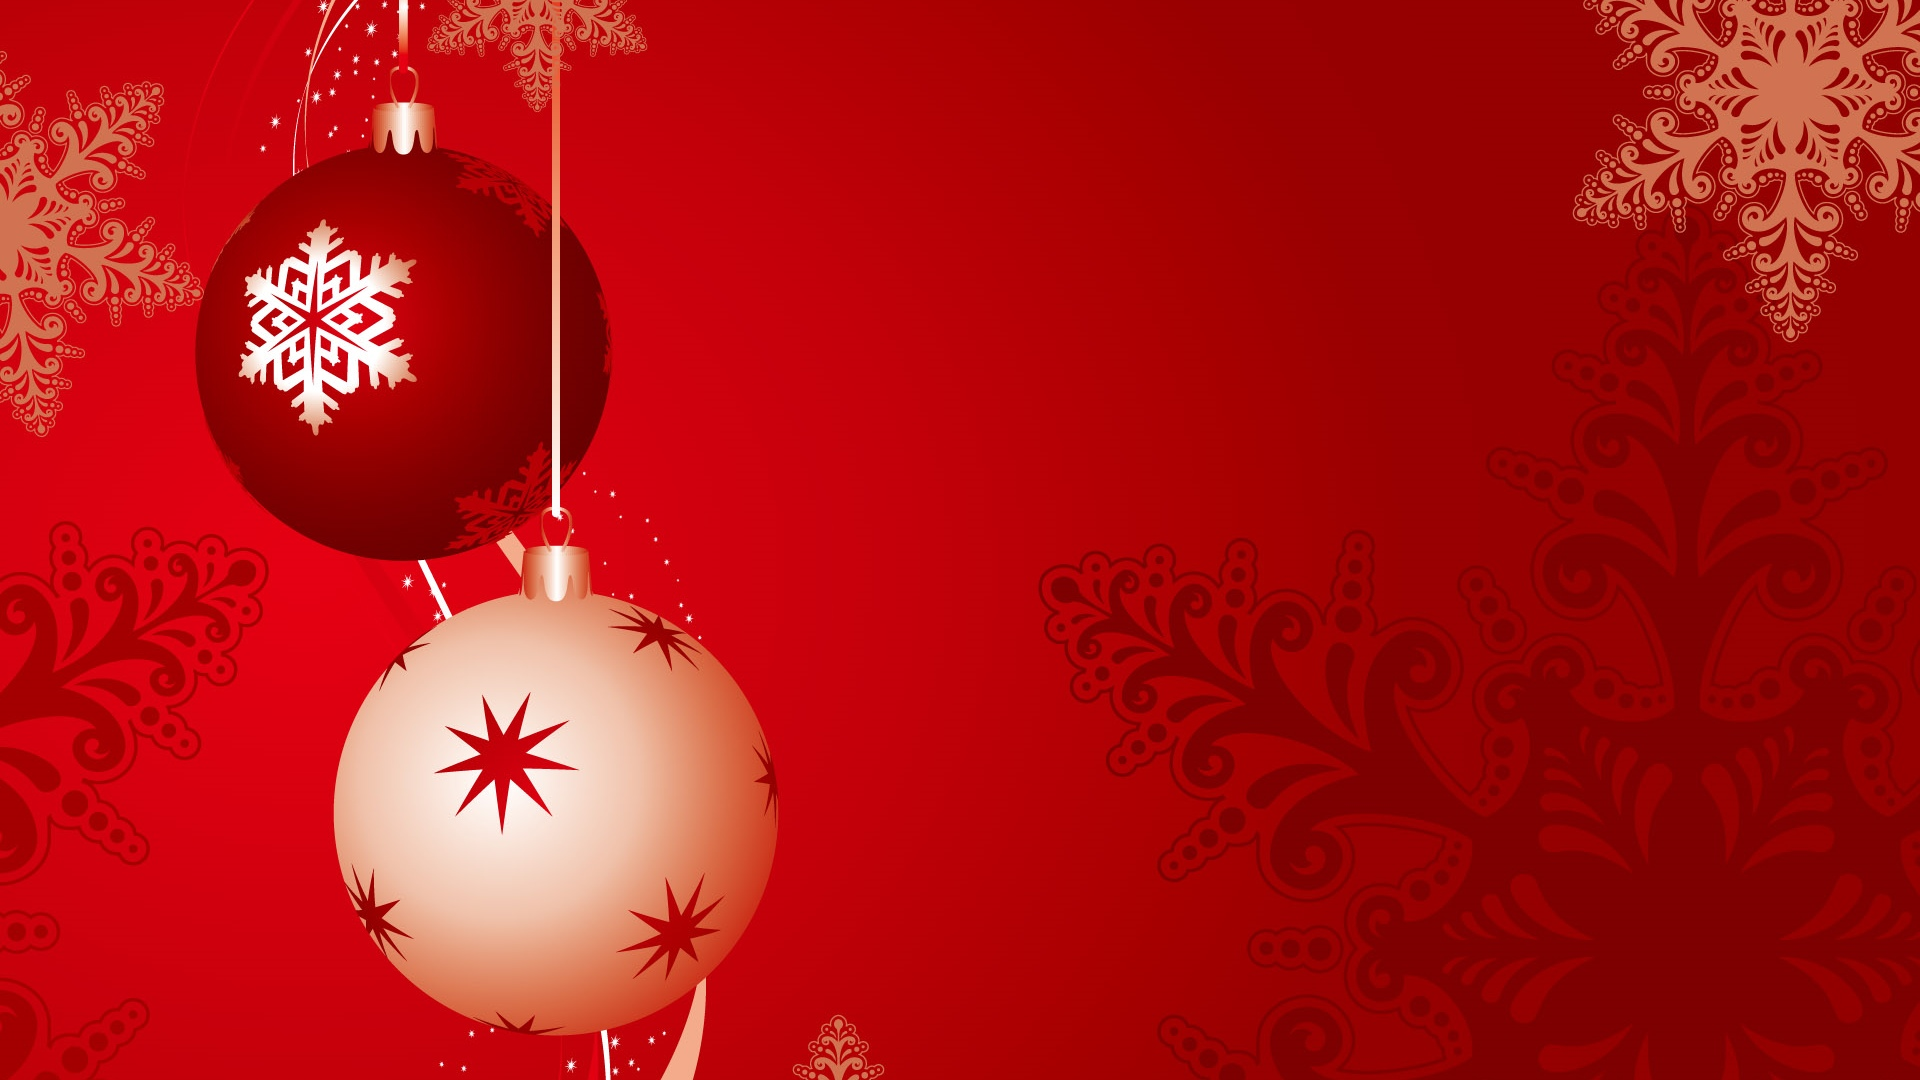 Christmas Background Hd.Georgian Youth For Europe Red Christmas Background